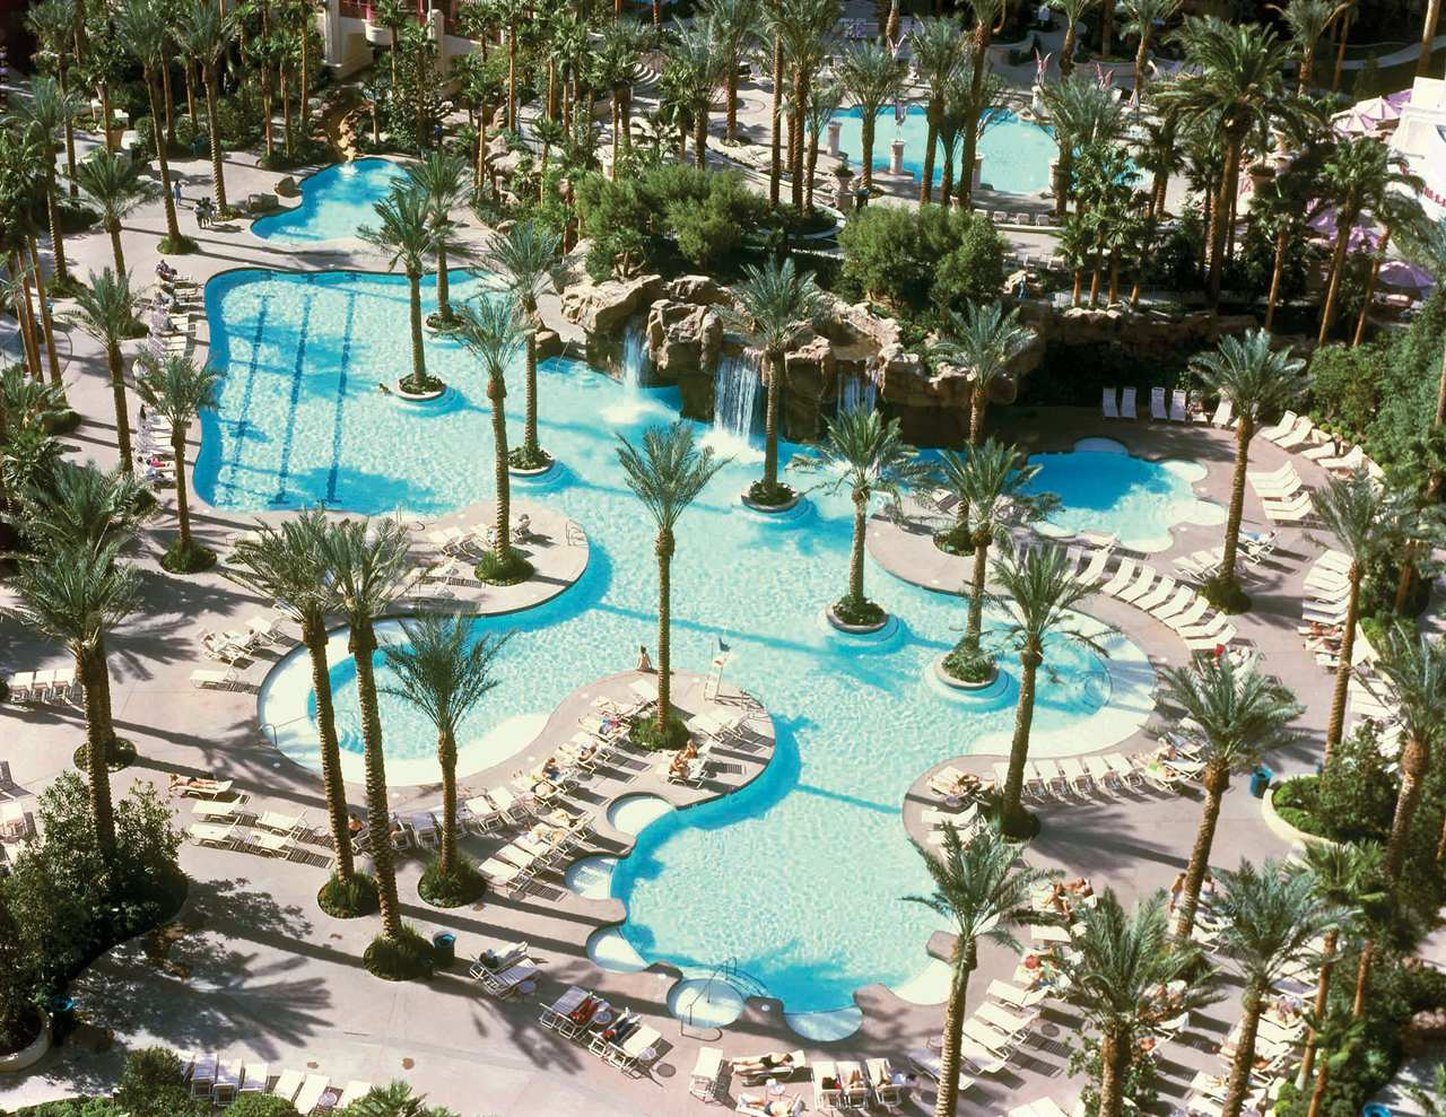 Flamingo Las Vegas Kid Pool Adestinn